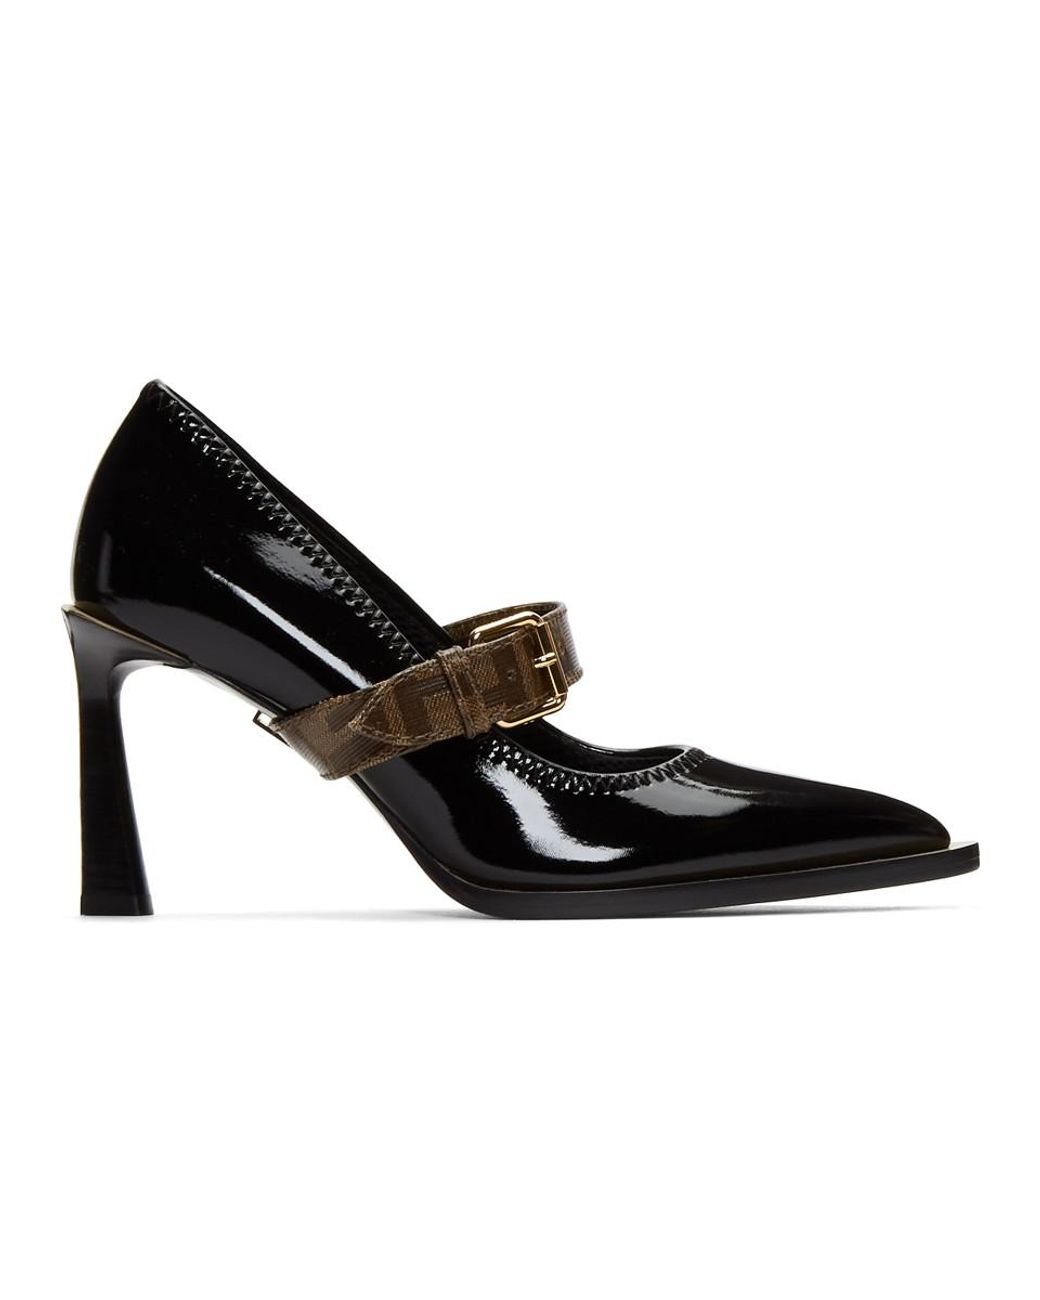 Mary Jane Buckle Leather Pump